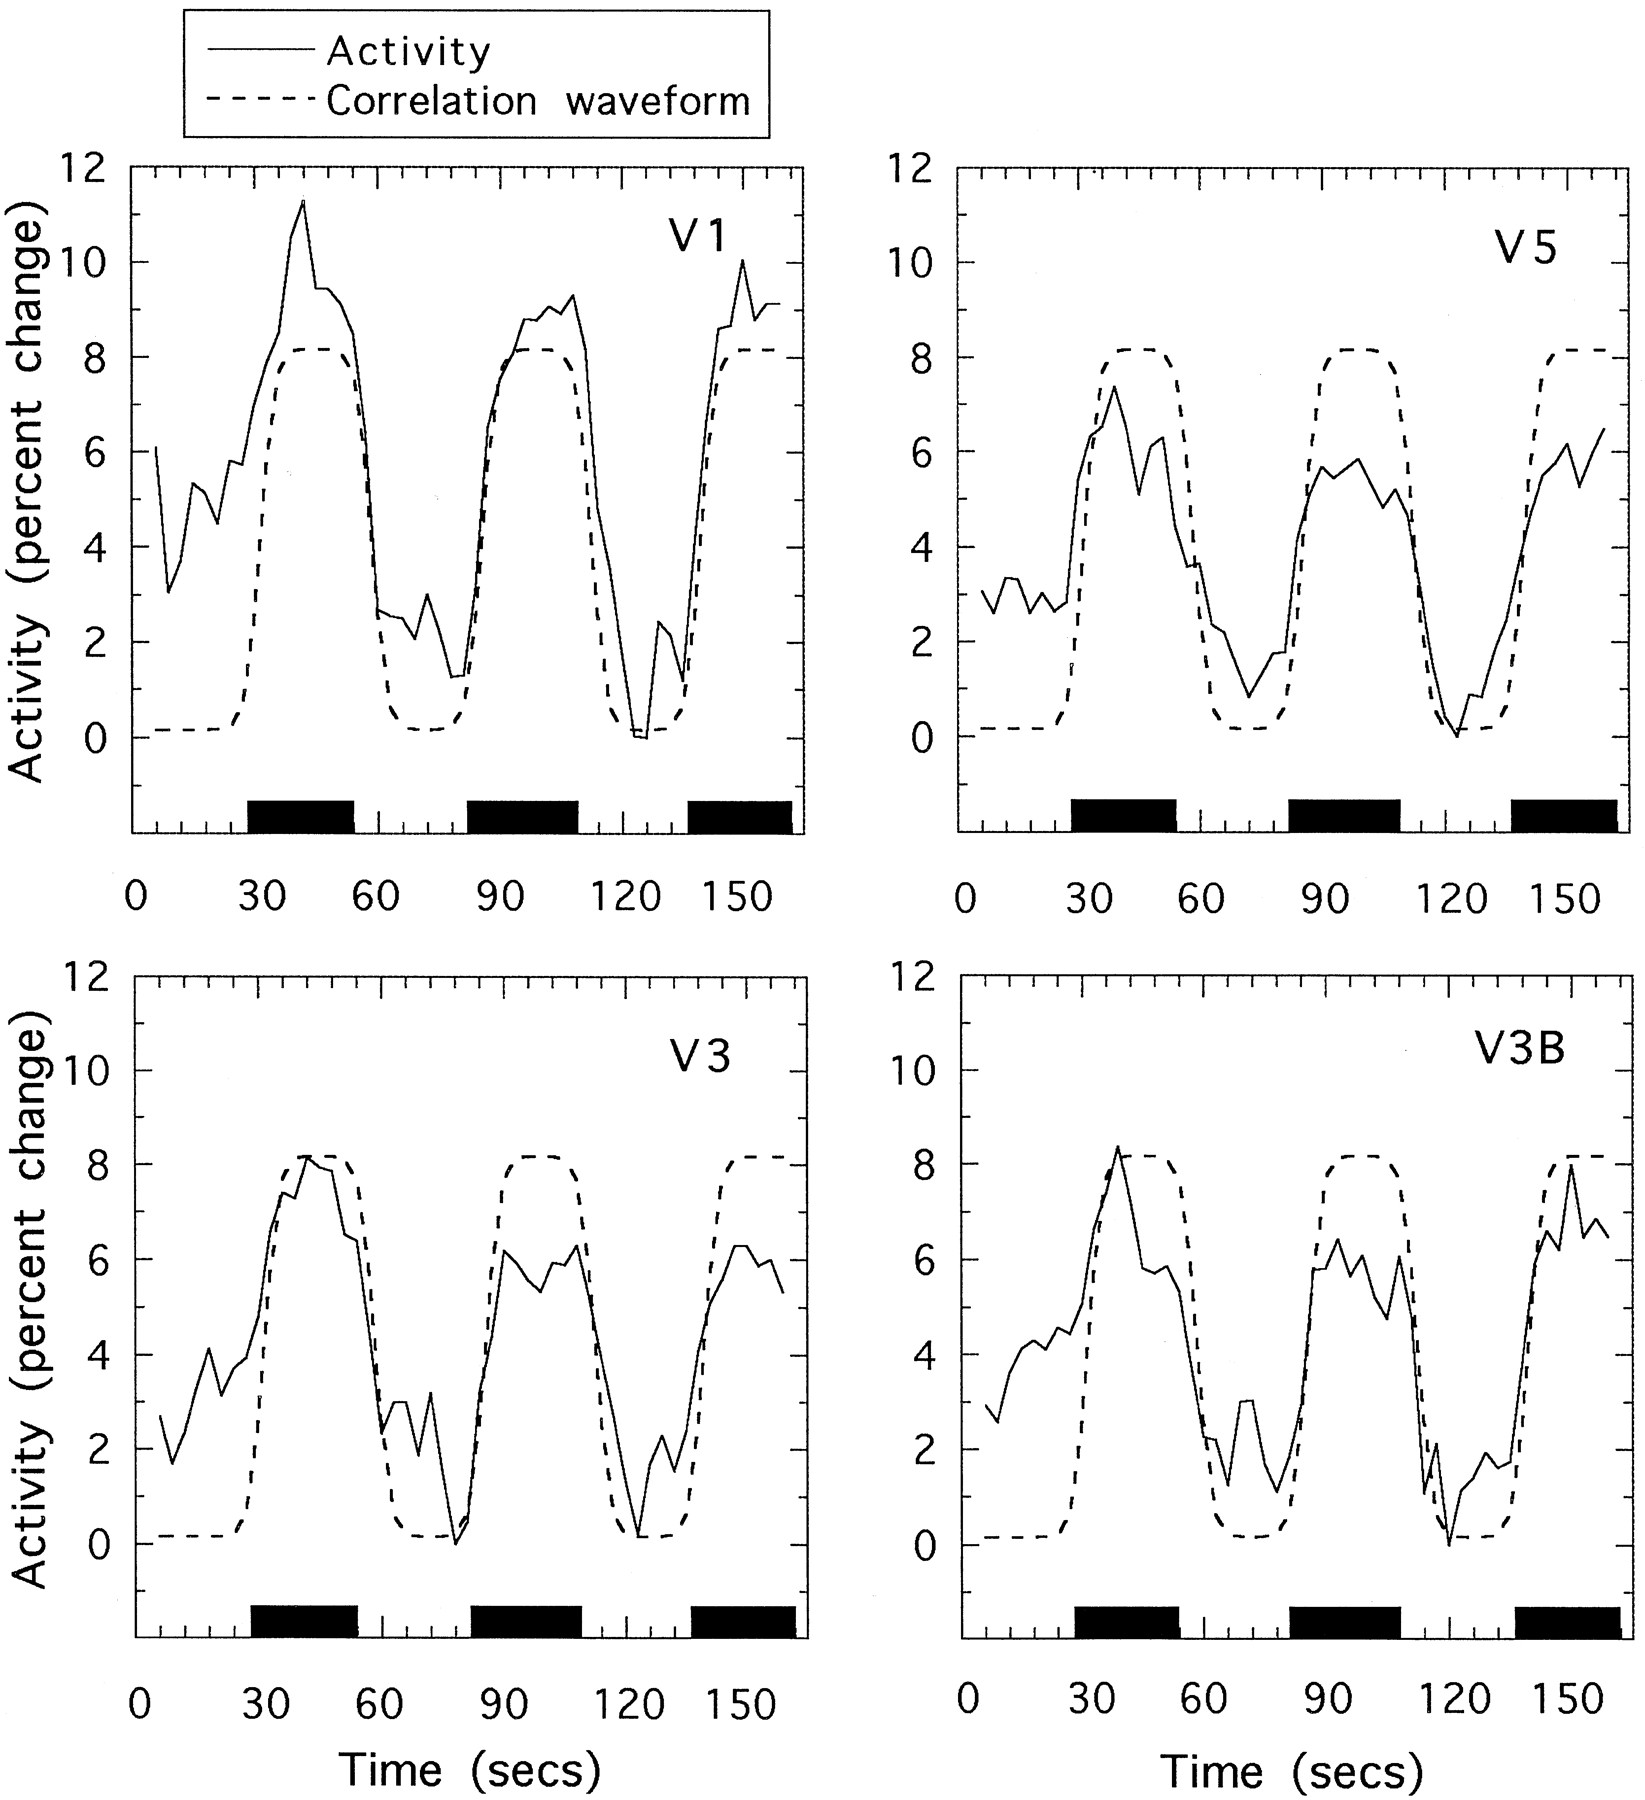 The Processing Of First And Second Order Motion In Human Visual Tahmid39s Blog Ac Power Control With Thyristor Pulse Skipping Using Download Figure Open New Tab